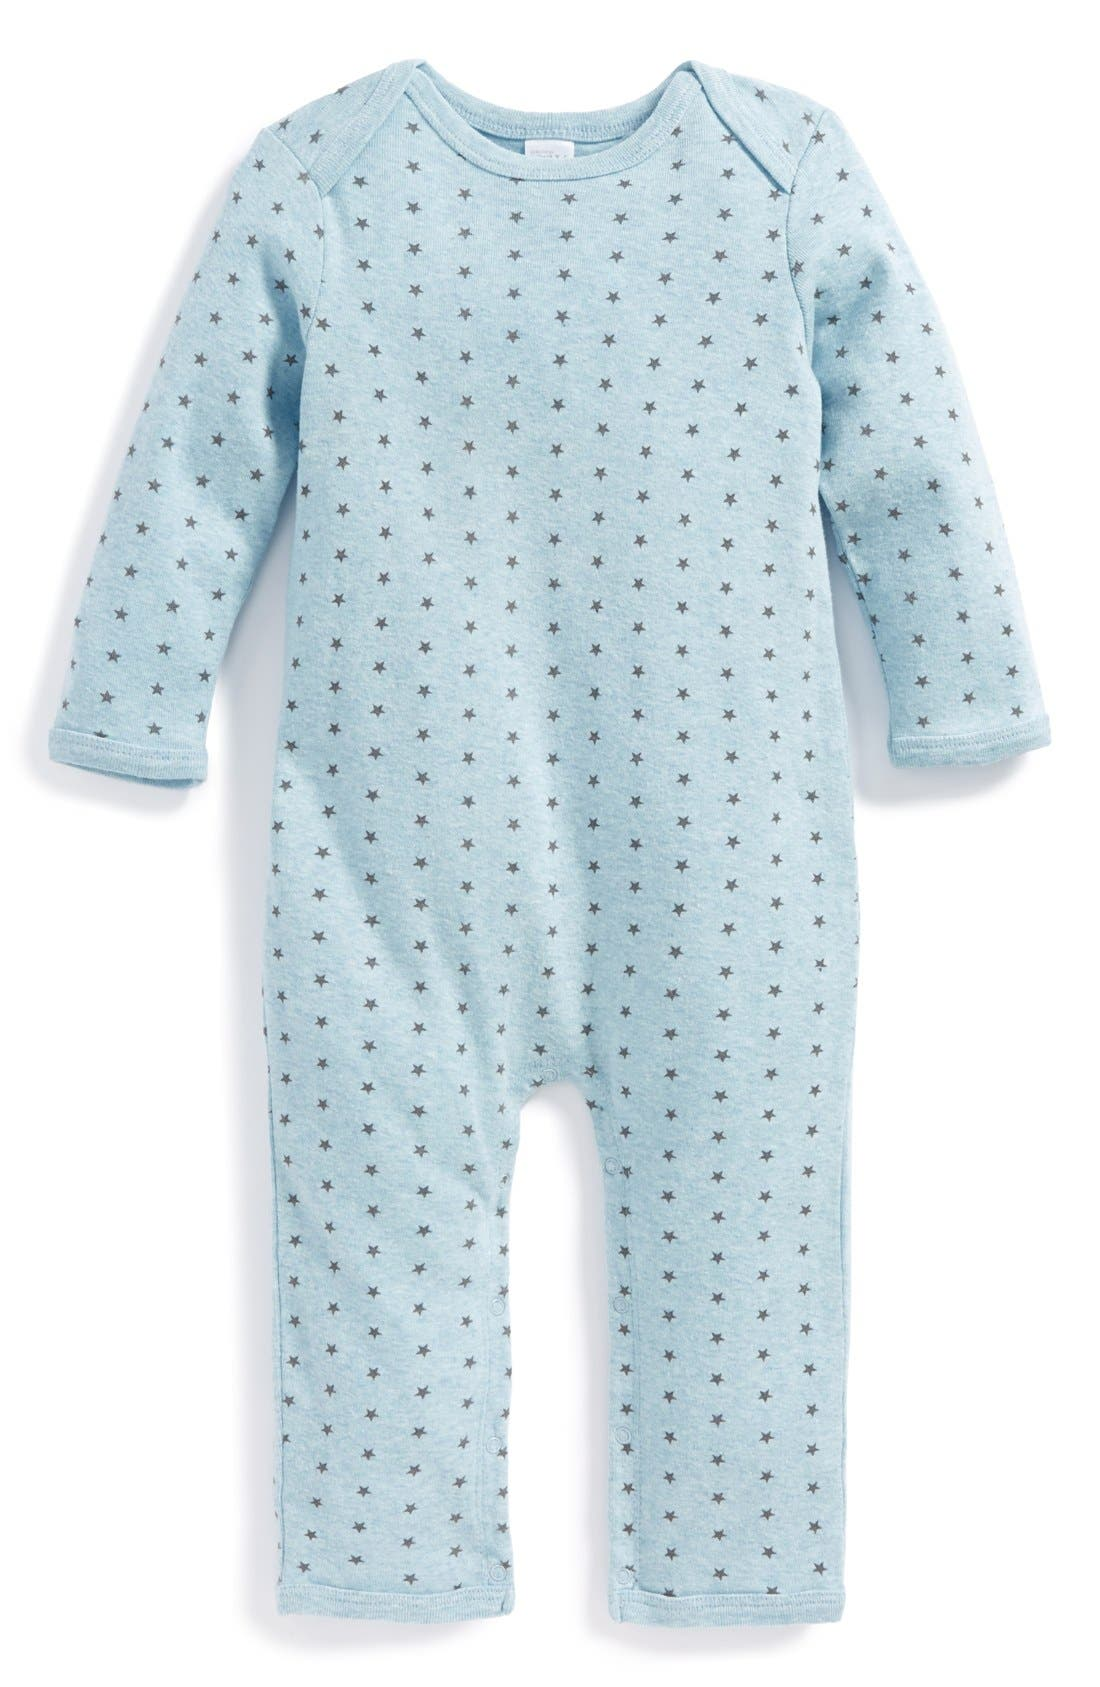 Main Image - Nordstrom Baby Print Romper (Baby)